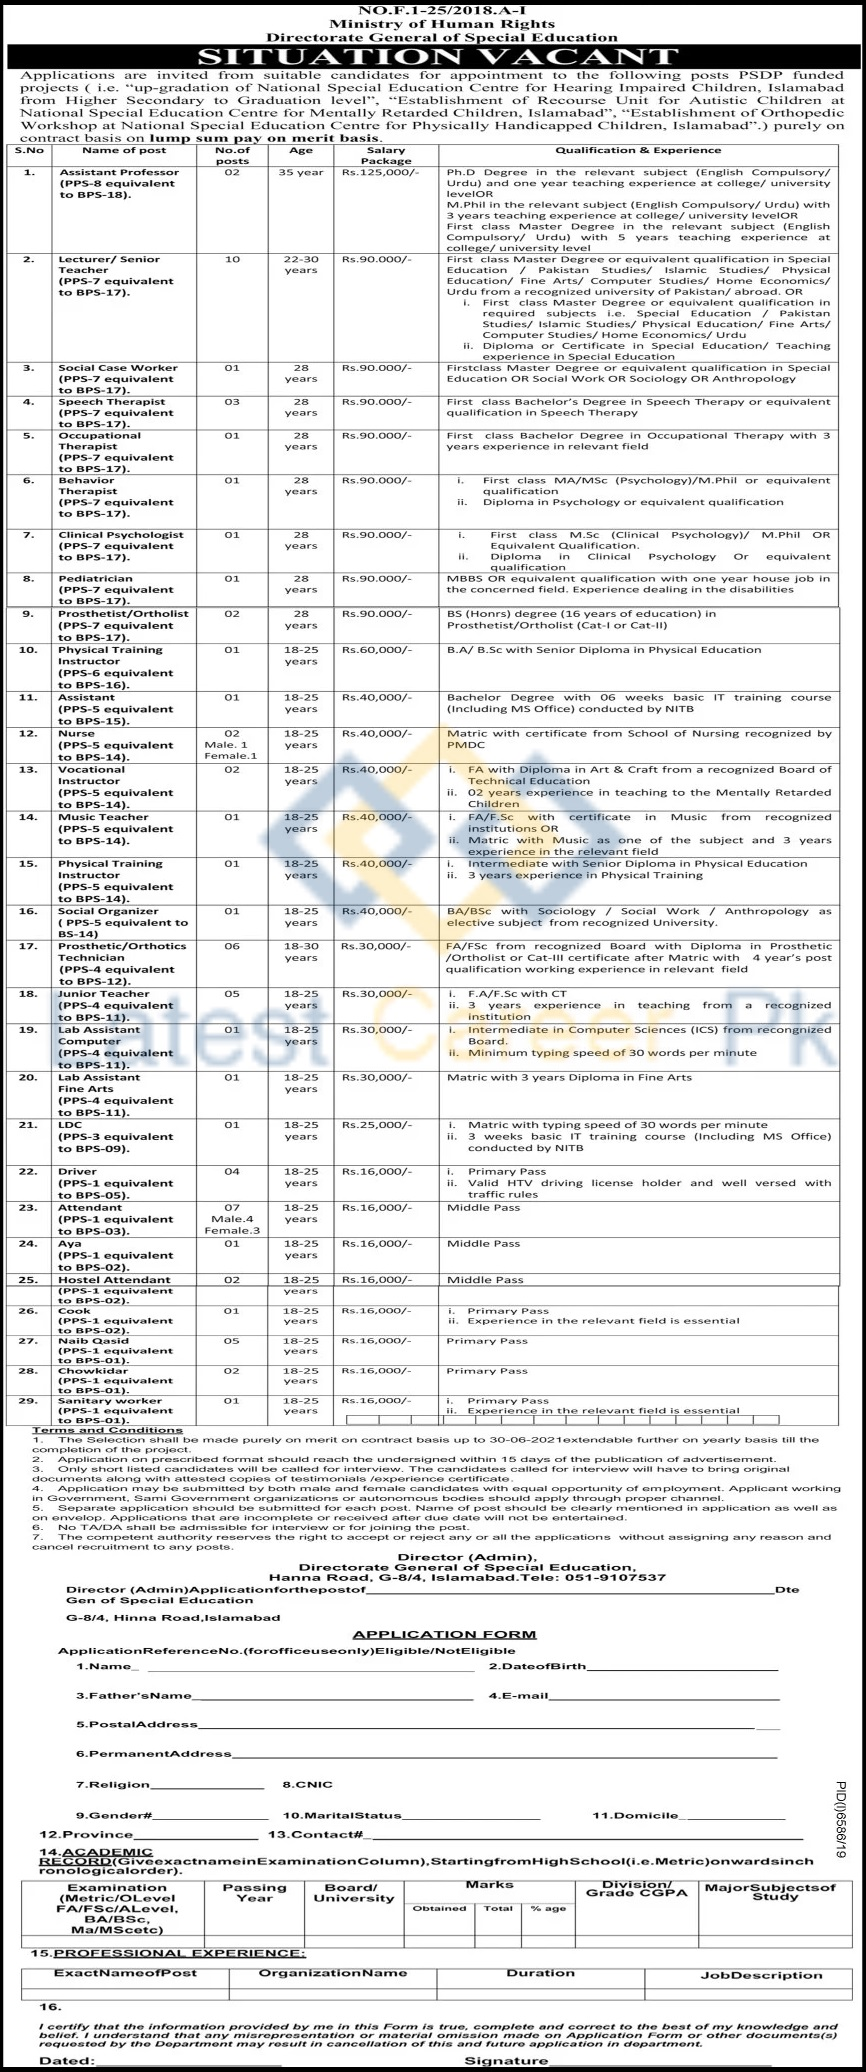 Govt-of-Pakistan-Ministry-of-Human-Rights-MOHR-Islamabad-Jobs-10-June-2020